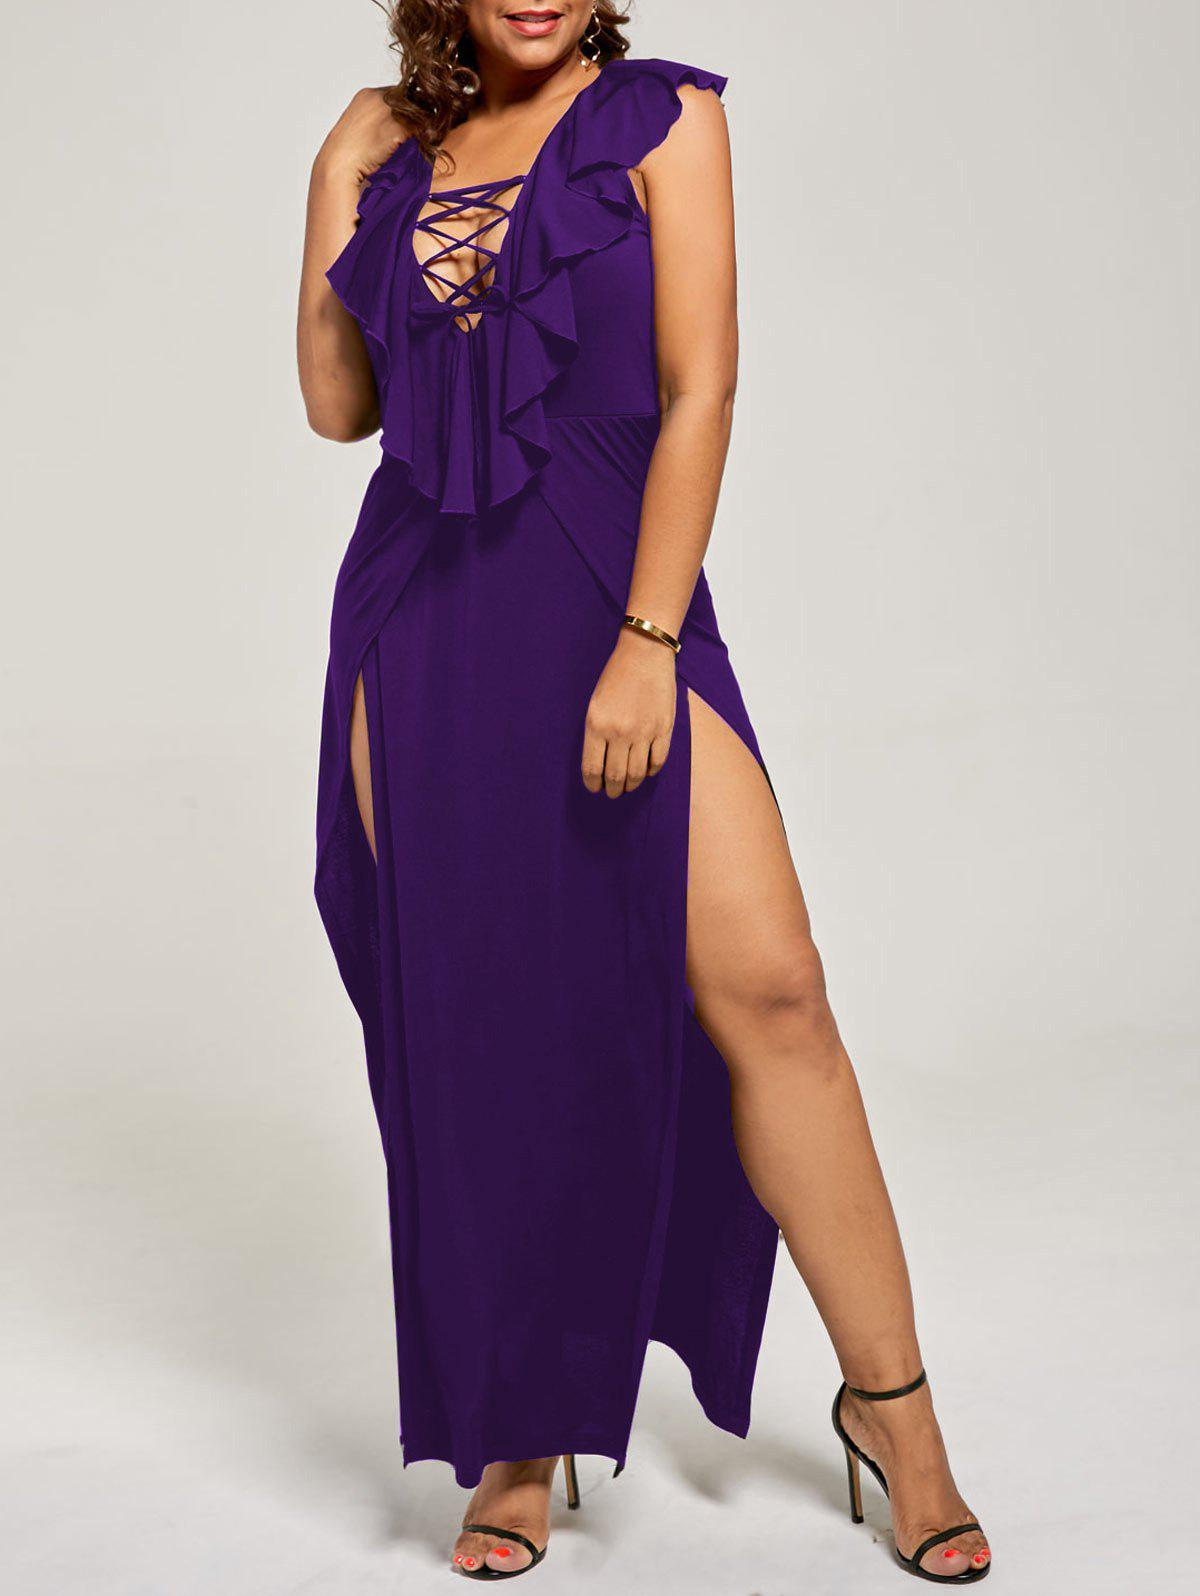 Plus Size Flounce Lace Up Maxi High Slit DressWOMEN<br><br>Size: 3XL; Color: DEEP PURPLE; Style: Casual; Material: Polyester,Spandex; Silhouette: A-Line; Dresses Length: Floor-Length; Neckline: Plunging Neck; Sleeve Length: Sleeveless; Pattern Type: Solid; With Belt: No; Season: Fall,Spring,Summer; Weight: 0.3500kg; Package Contents: 1 x Dress;